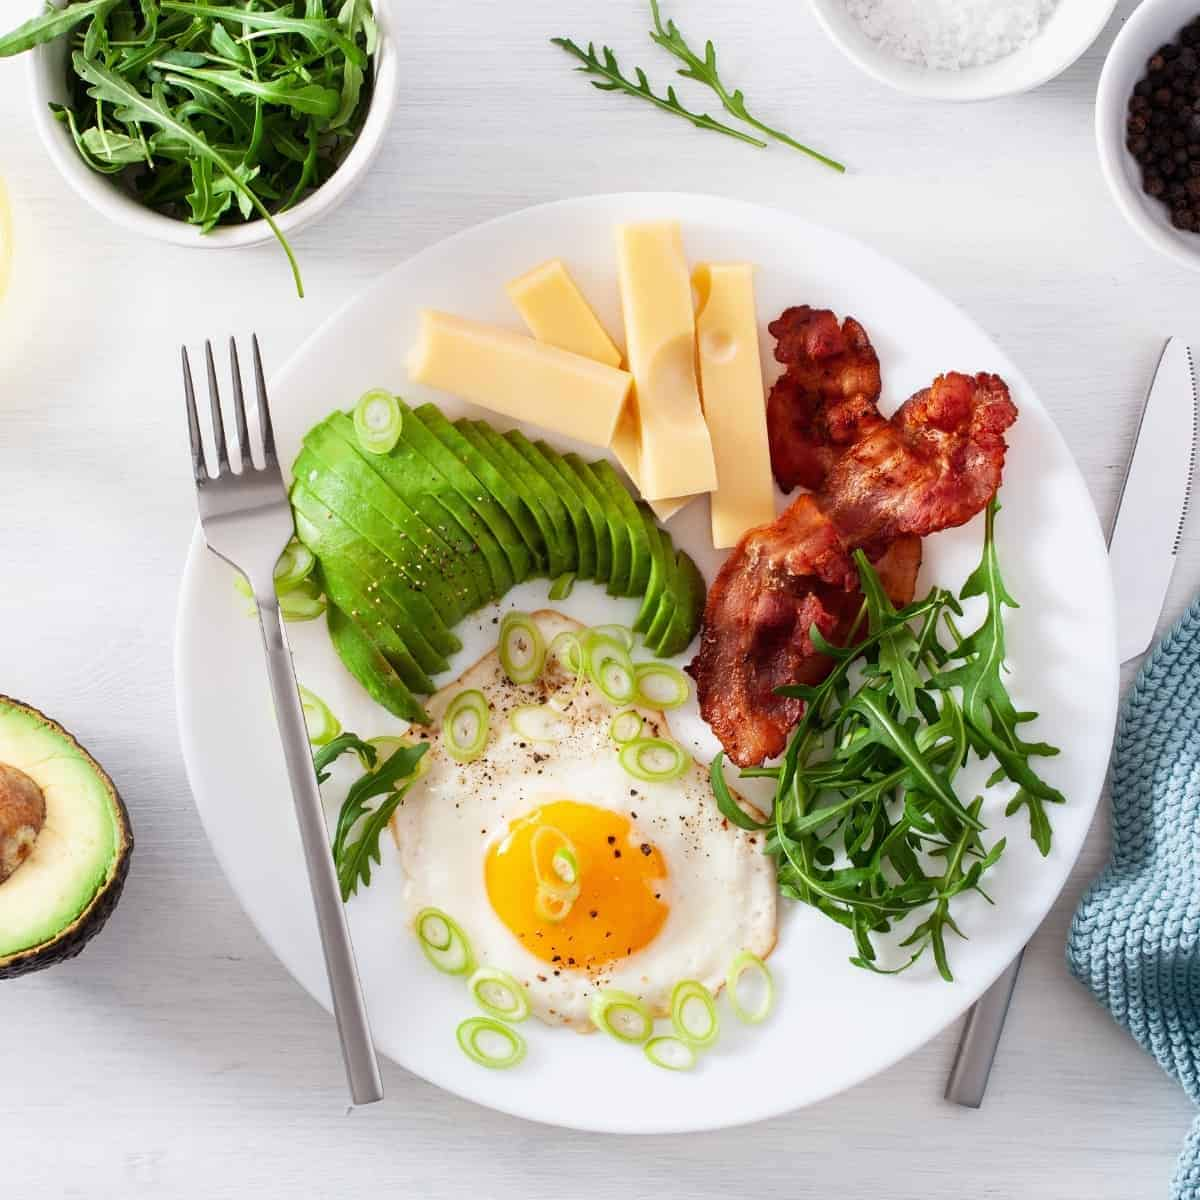 keto macro meal for weight loss on white plate